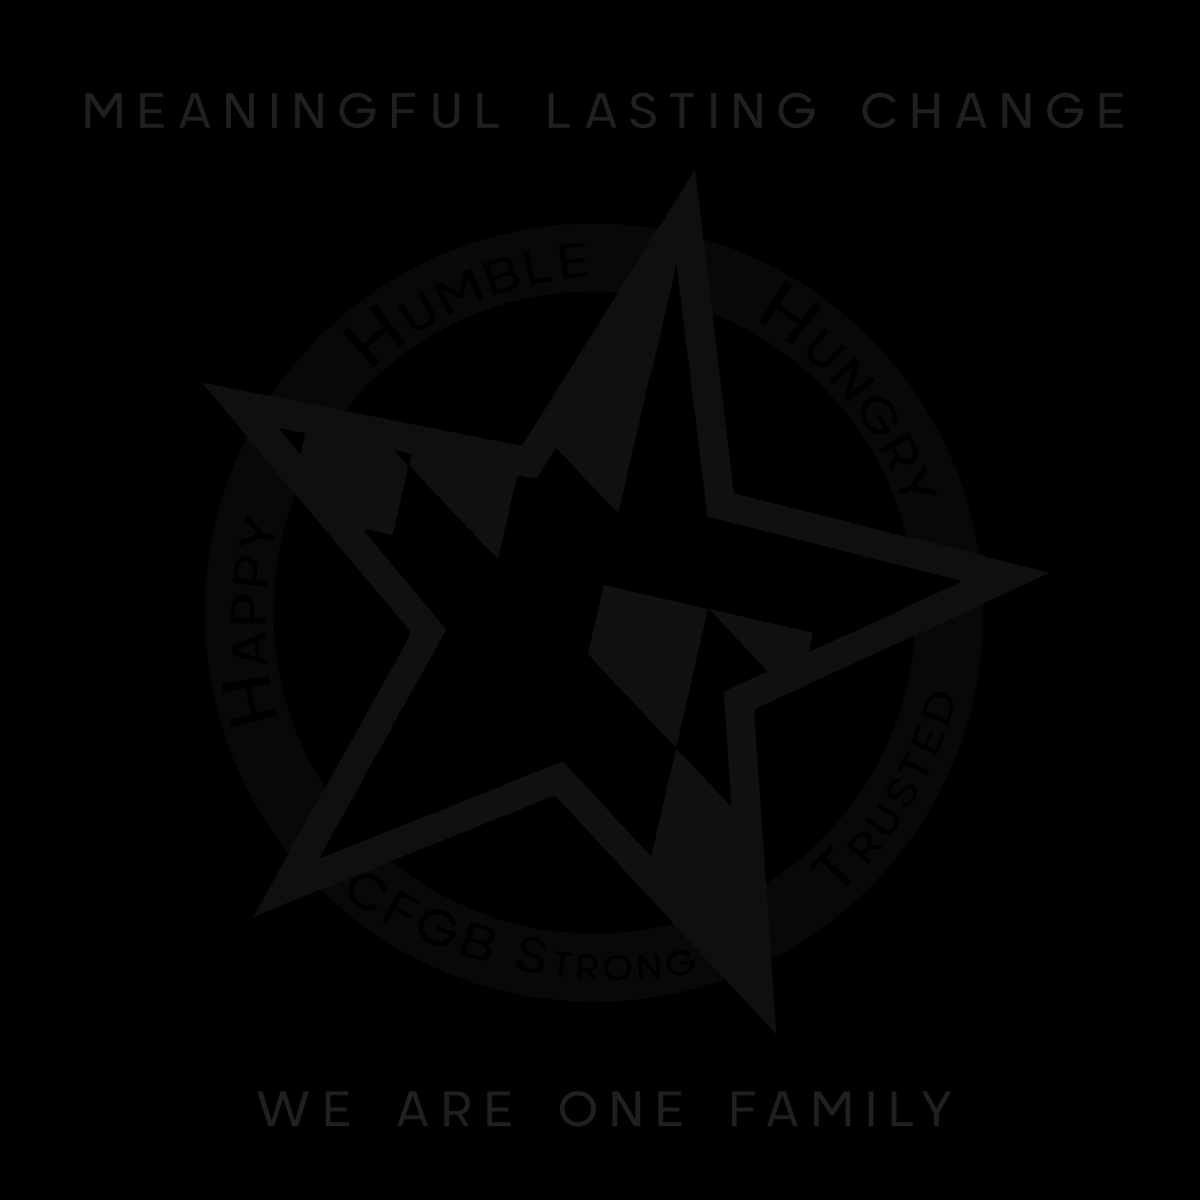 Real meaningful lasting change won't be easy.  Real change requires the hard work of the individual, the advocacy of the many, accountability to the cause, and humility to accept growth. . We are one family - we stand together. pic.twitter.com/J38gzzFCXV